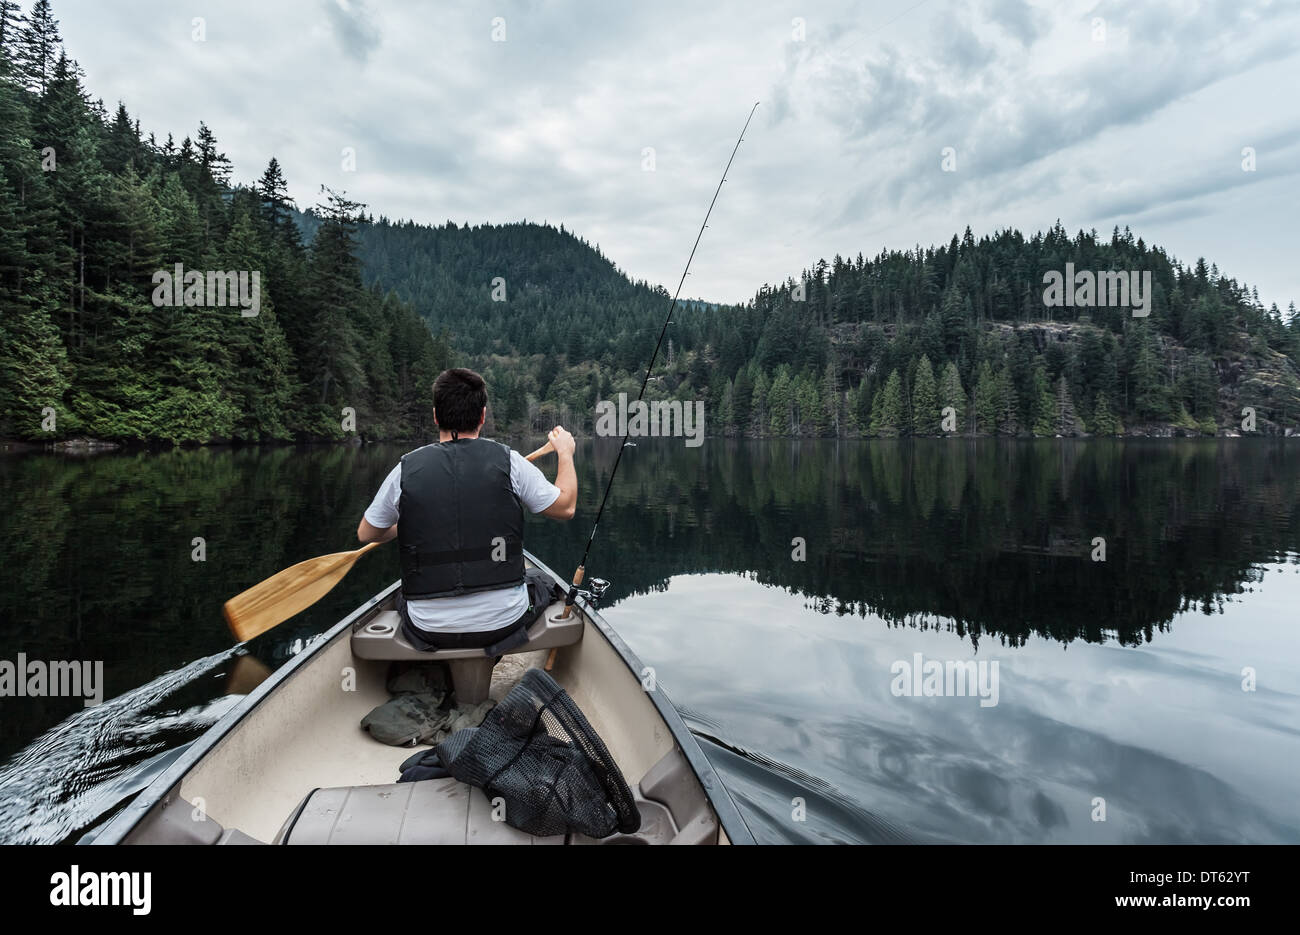 Junger Mann Angeln, Buntzen Lake, British Columbia, Kanada Stockbild